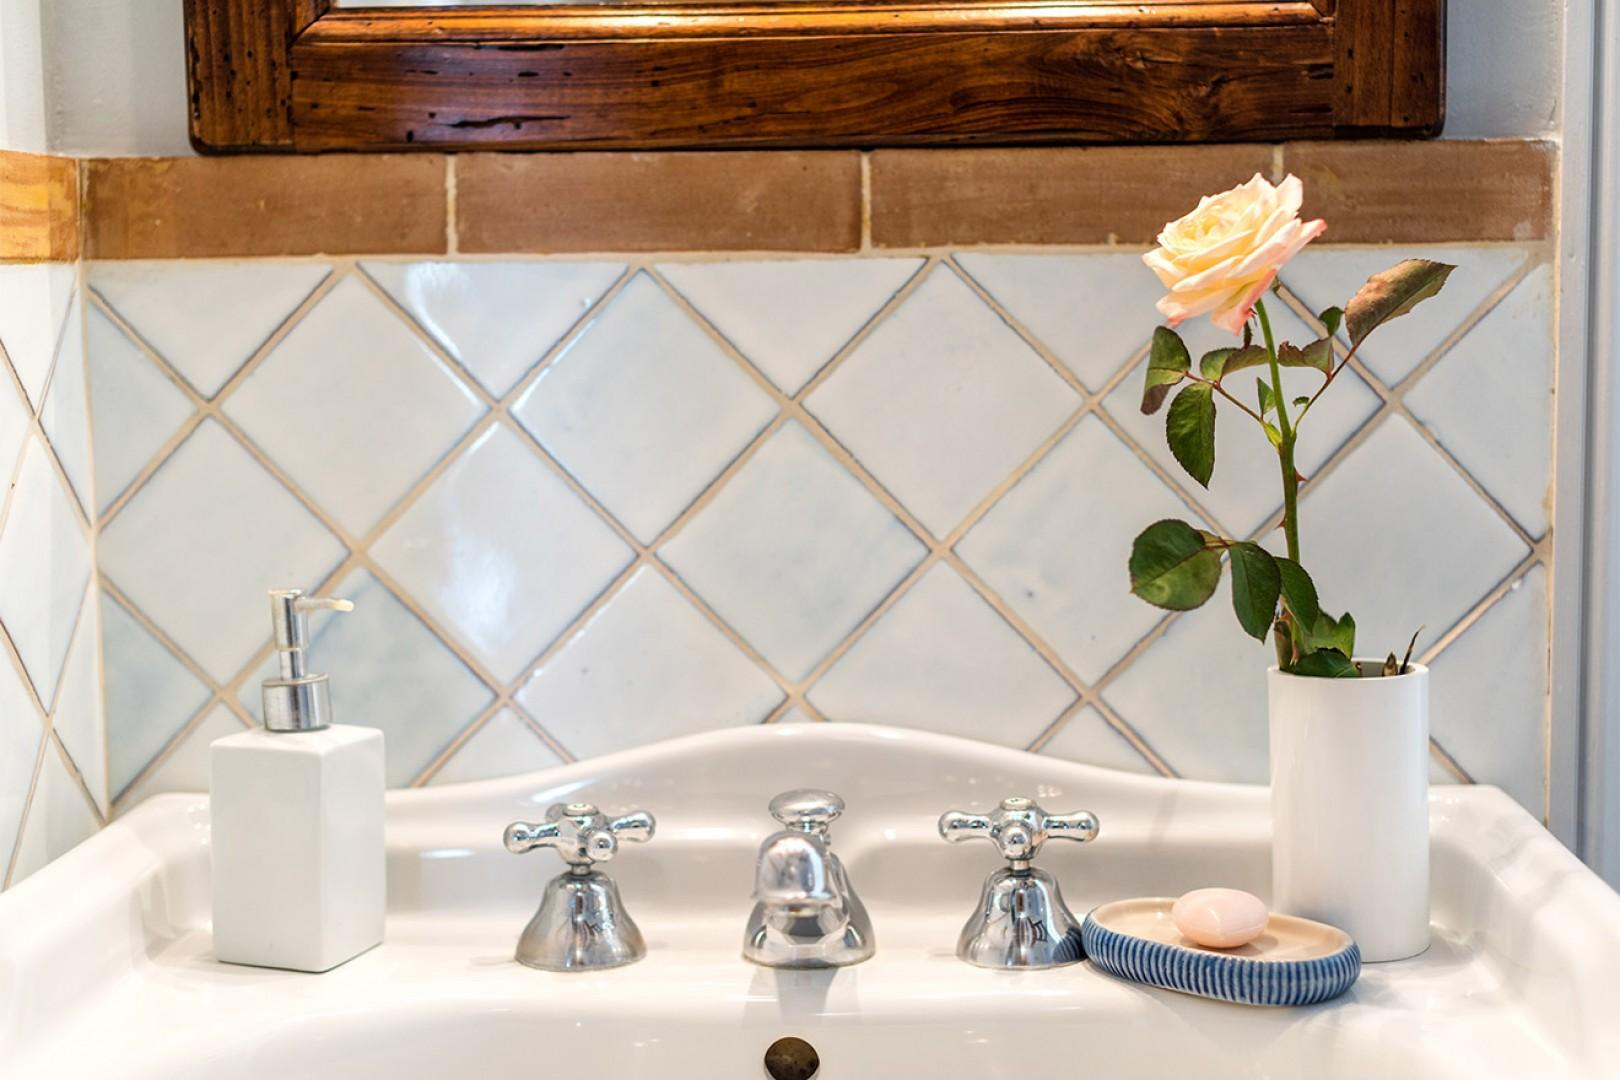 Start your day in this bright and clean bathroom.